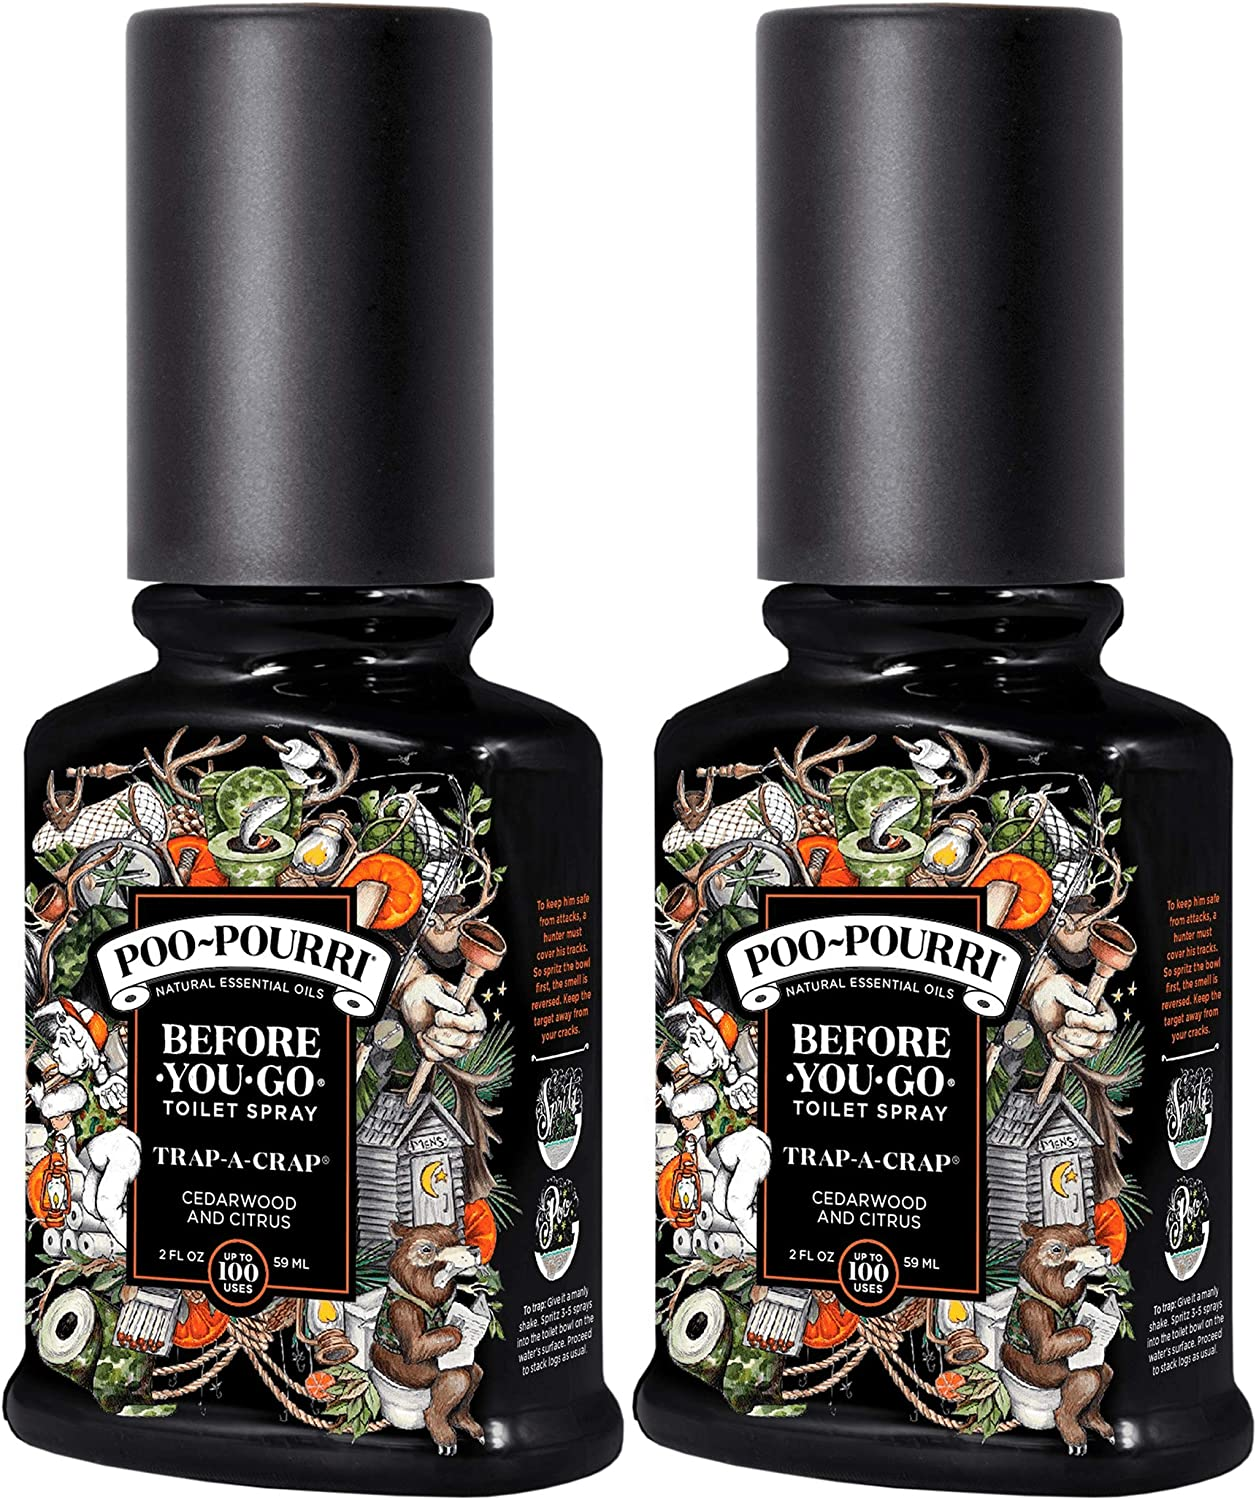 Poo-Pourri Before You Go Toilet Spray Trap A Crap 2 Ounce, 2 Pack